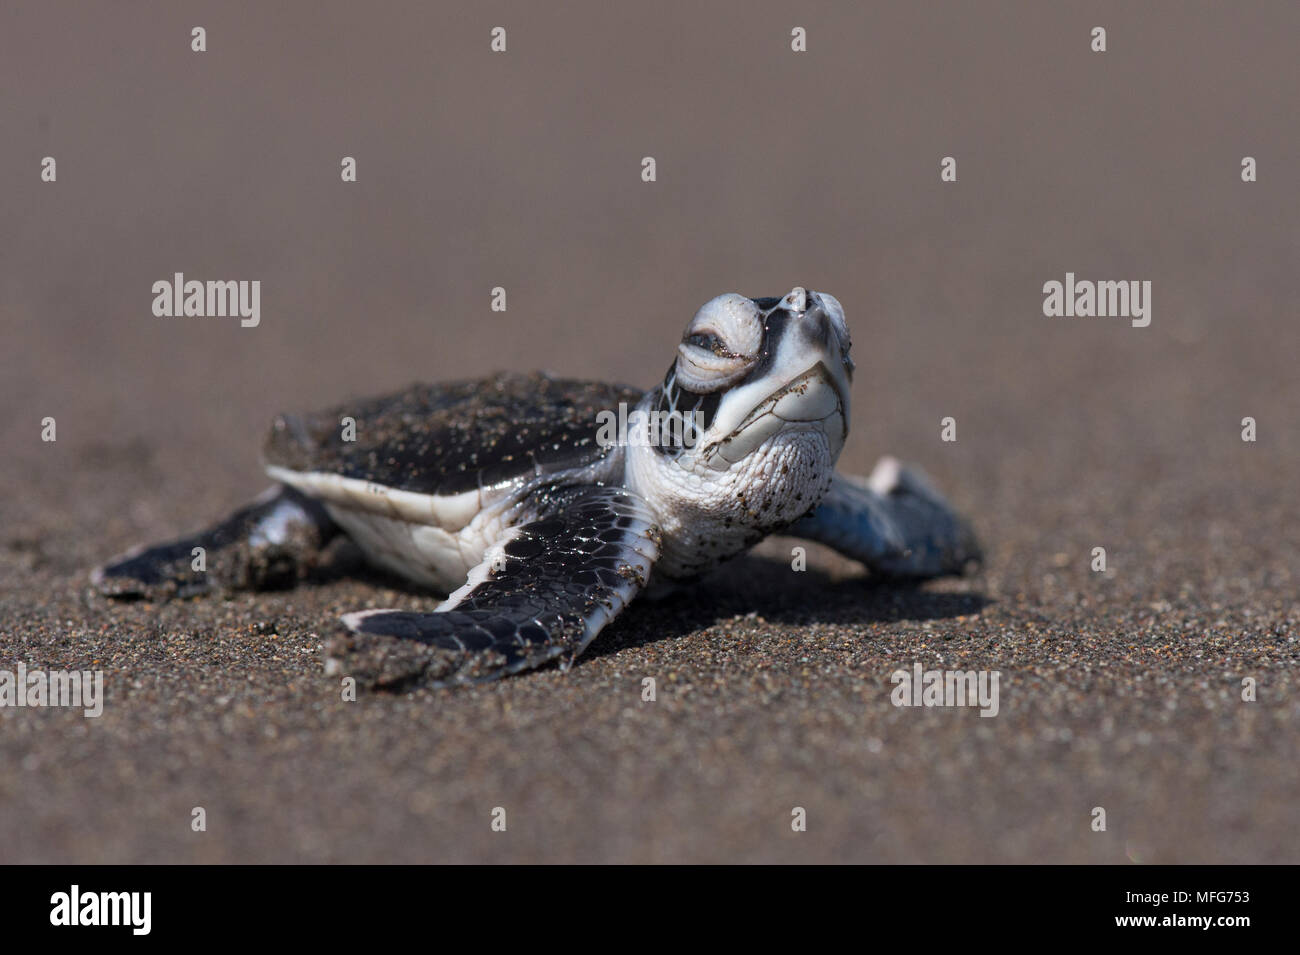 Green sea turtle hatchling  Chelonia mydas  emerging from nest in Tortuguero National Park  Costa Rica. - Stock Image